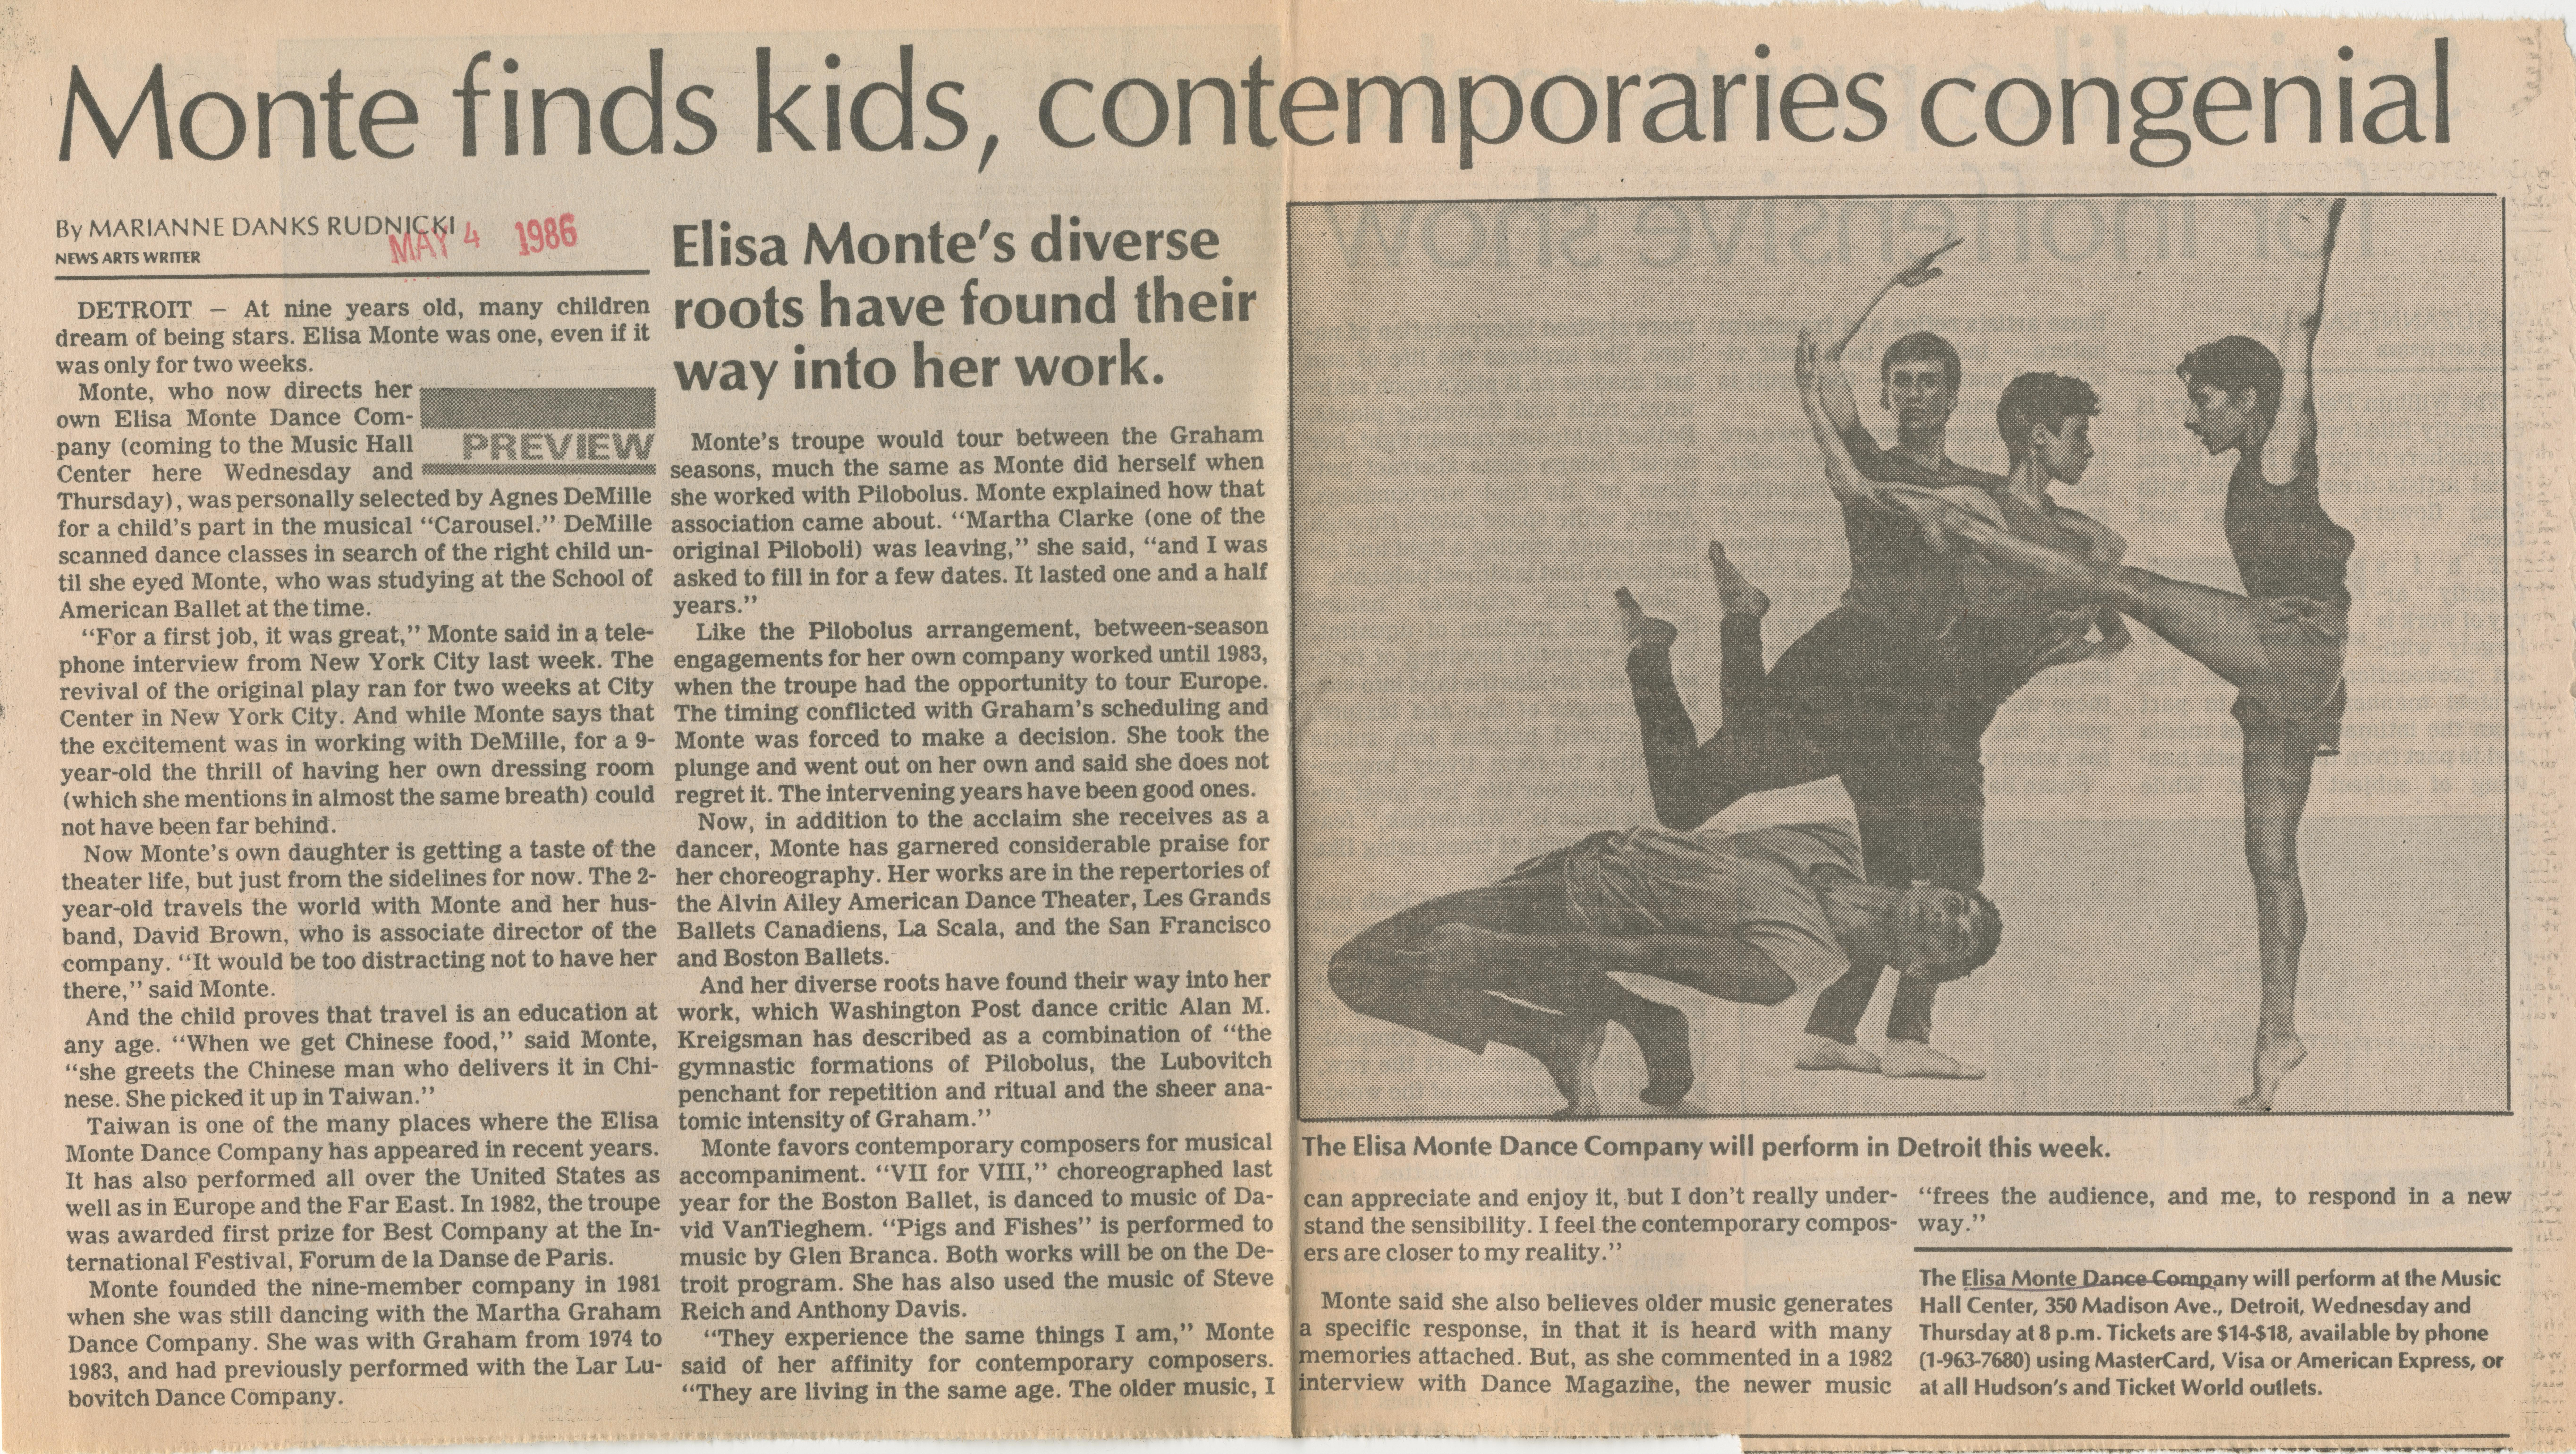 Monte Finds Kids, Contemporaries Congenial image